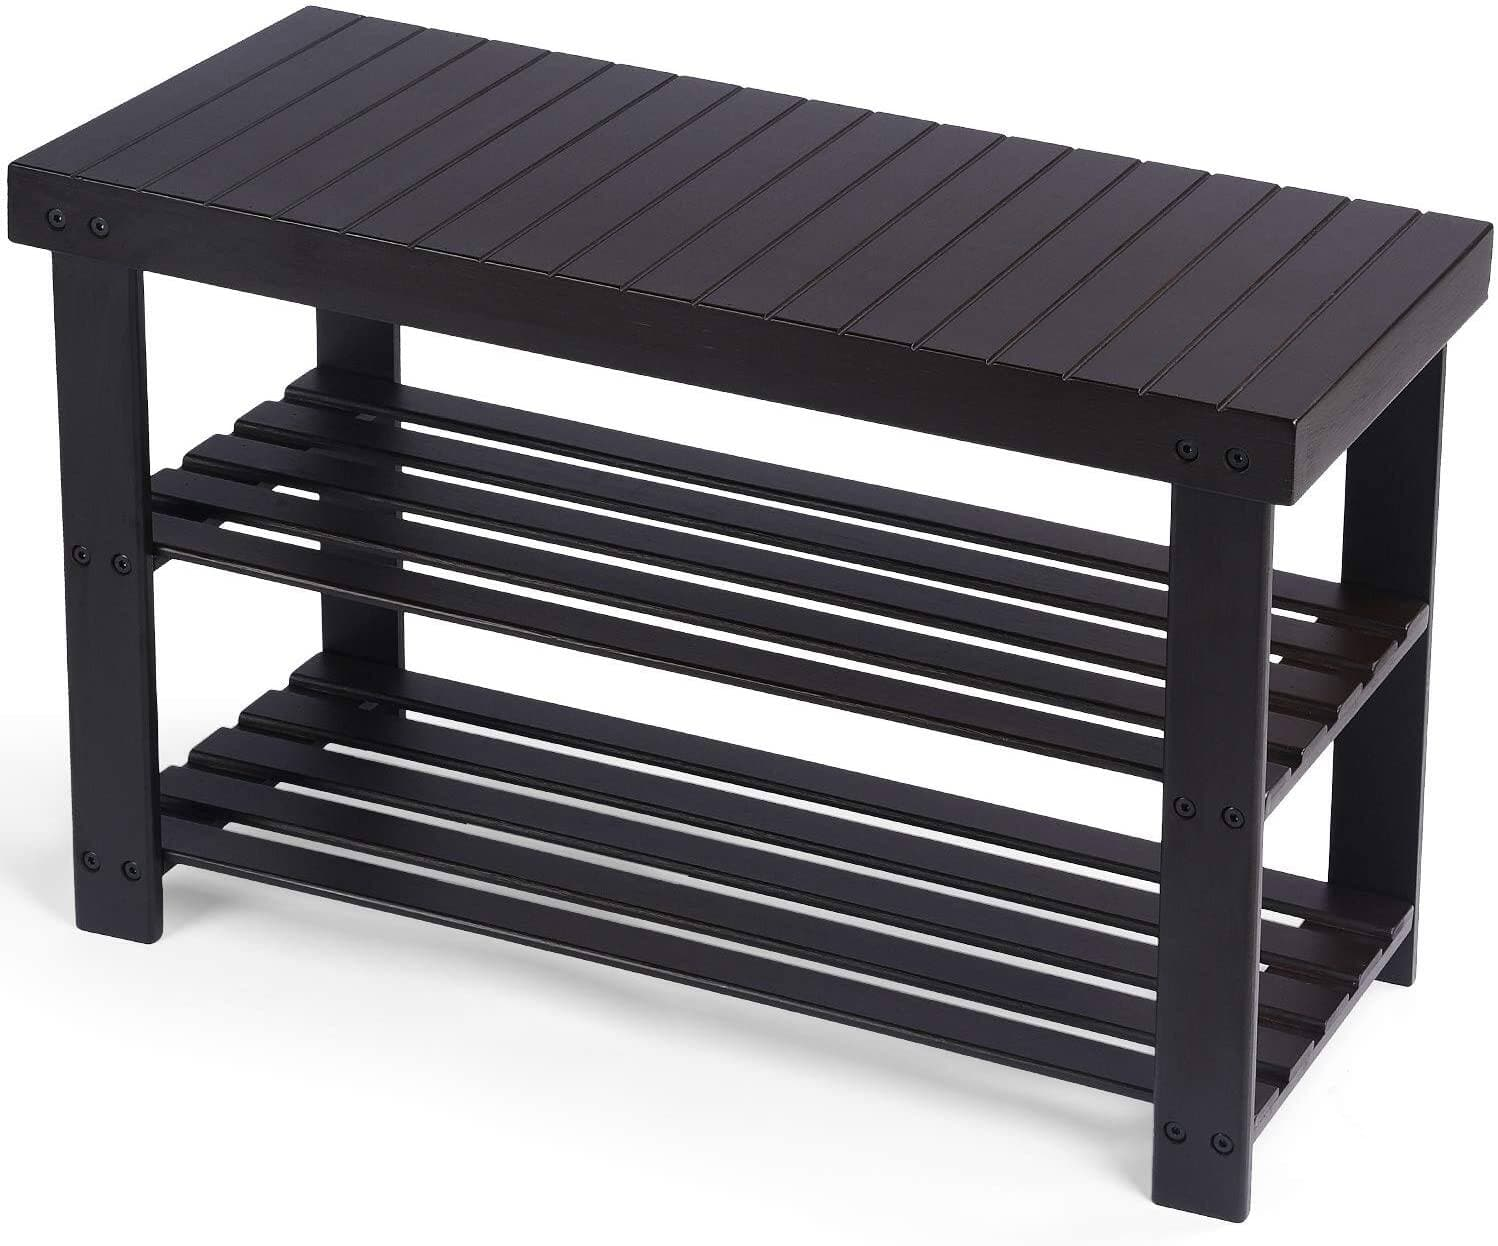 Comhoma 3-Tier Bamboo Bench/Shoe Rack Holds Up to 300 Lb, Brown for $25.19 + free shipping at Gtracing via Amazon